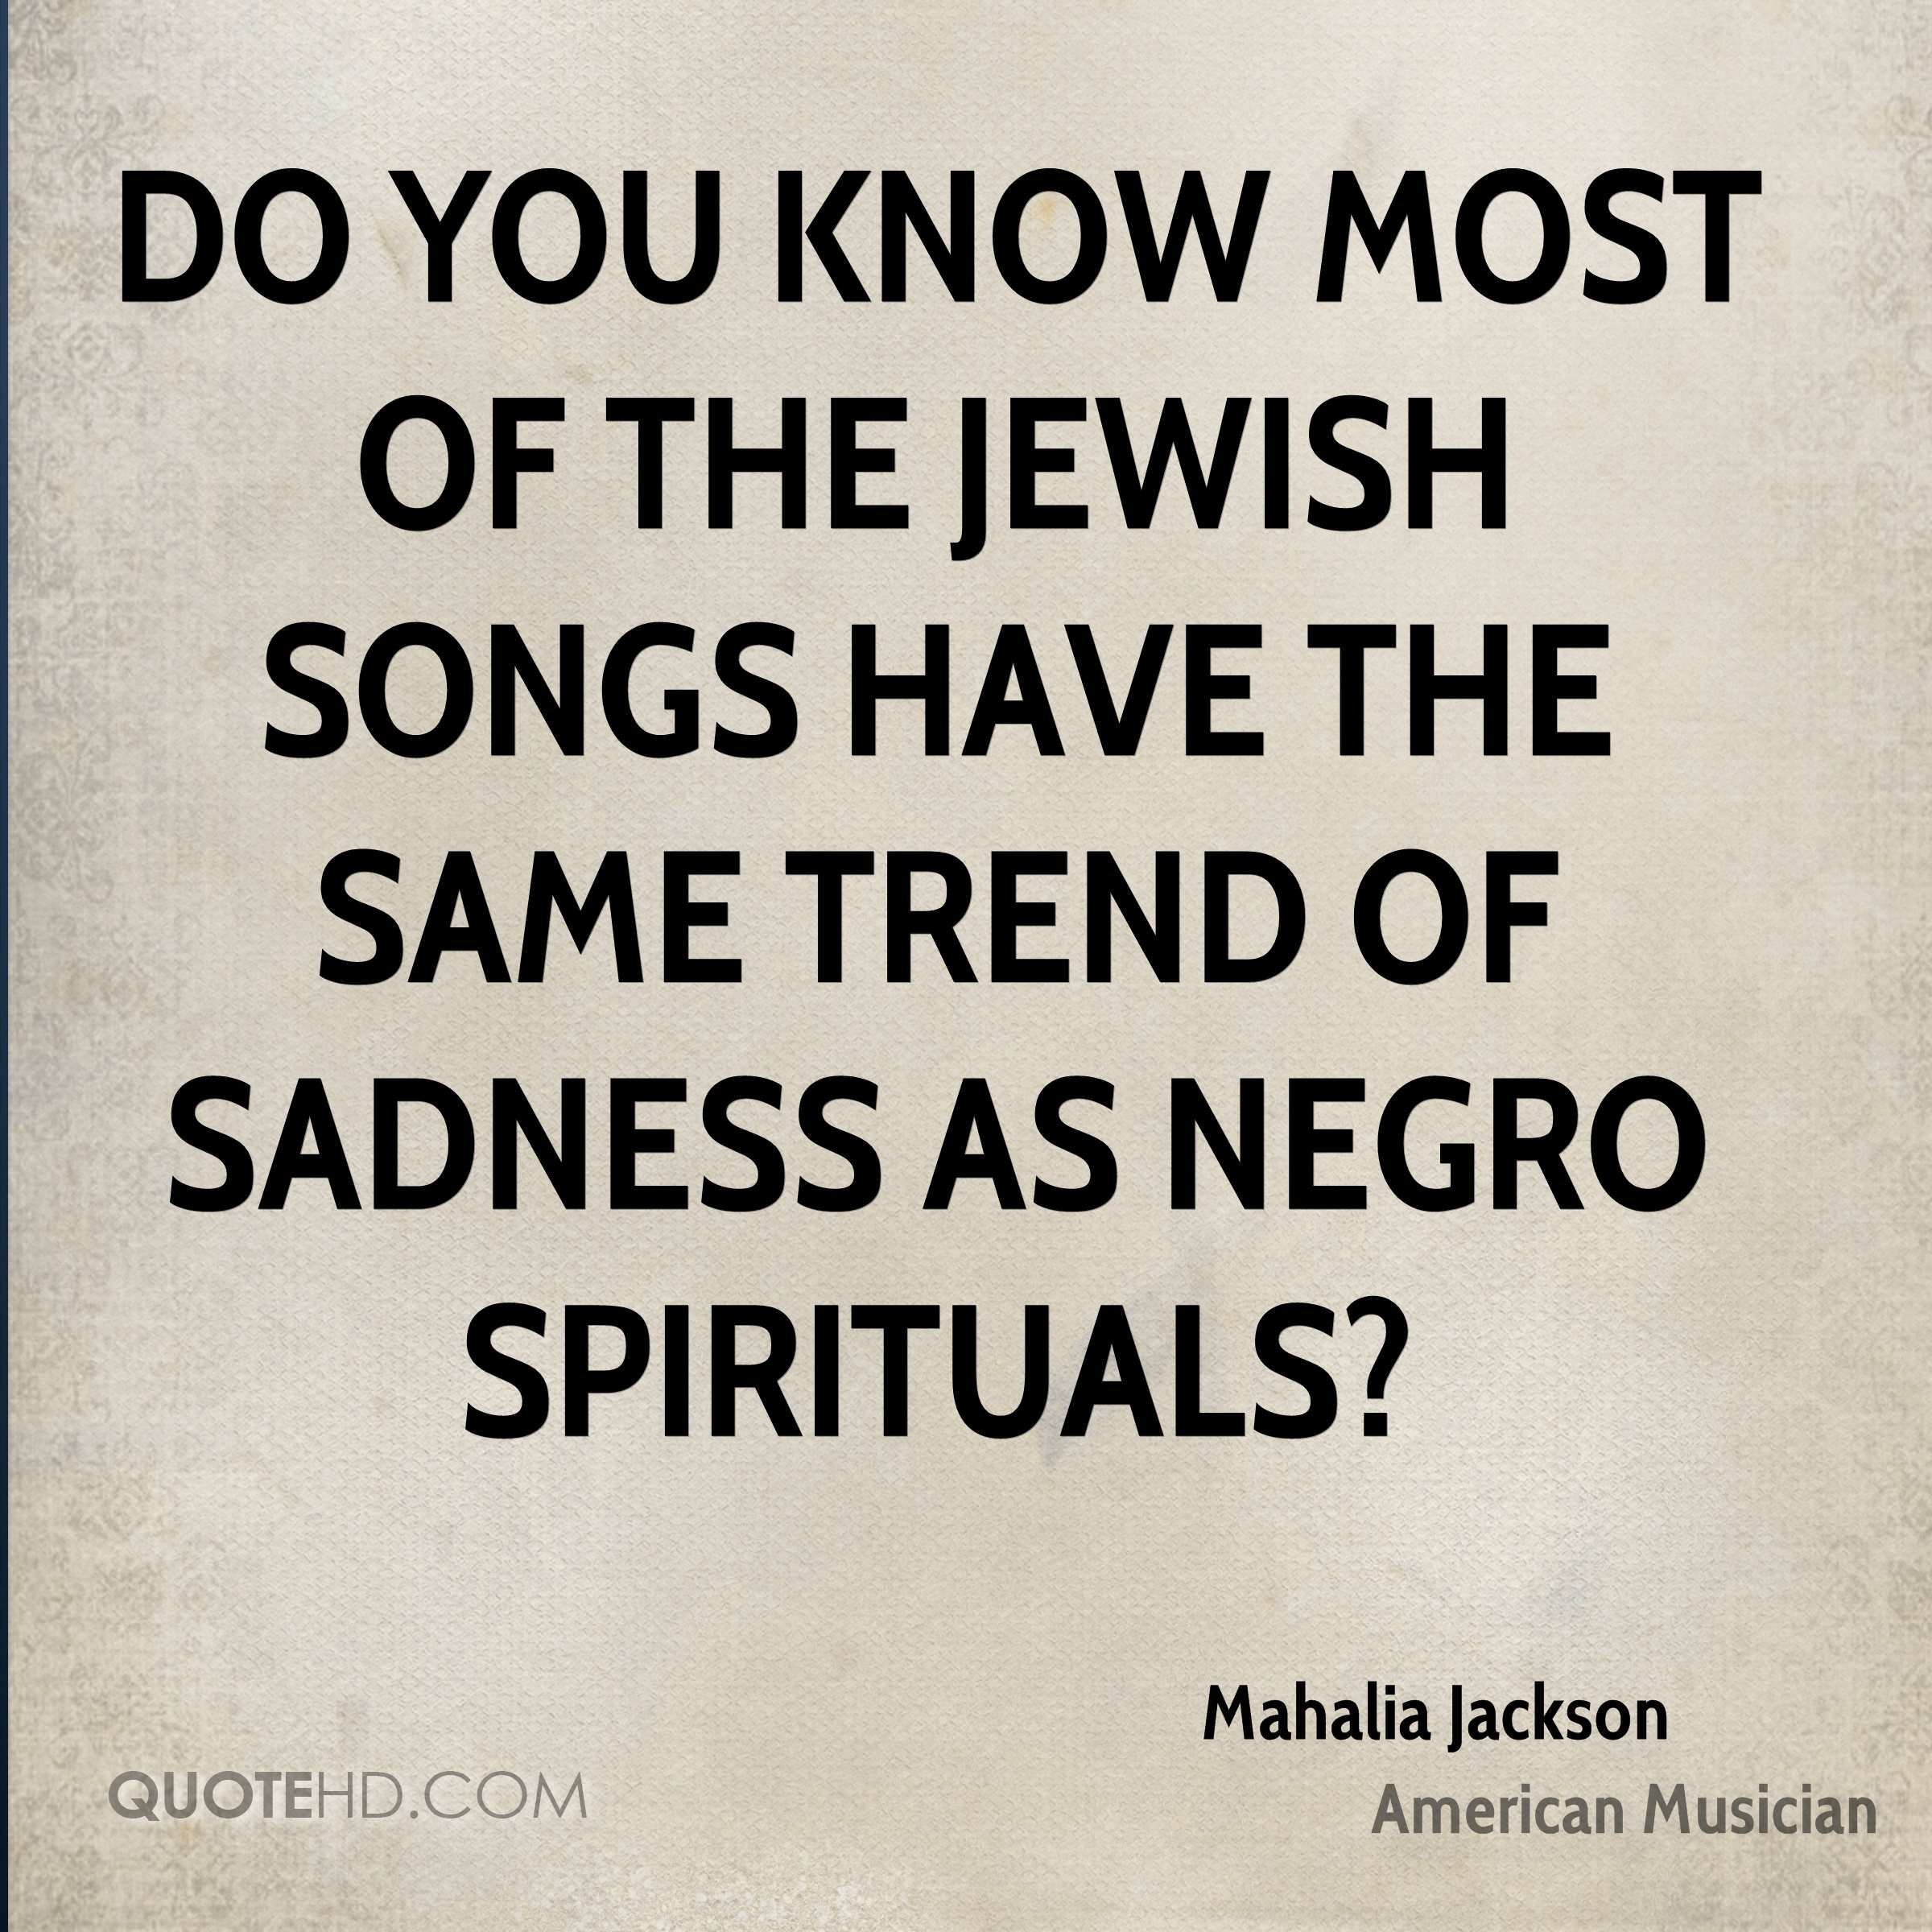 Do you know most of the Jewish songs have the same trend of sadness as Negro spirituals?